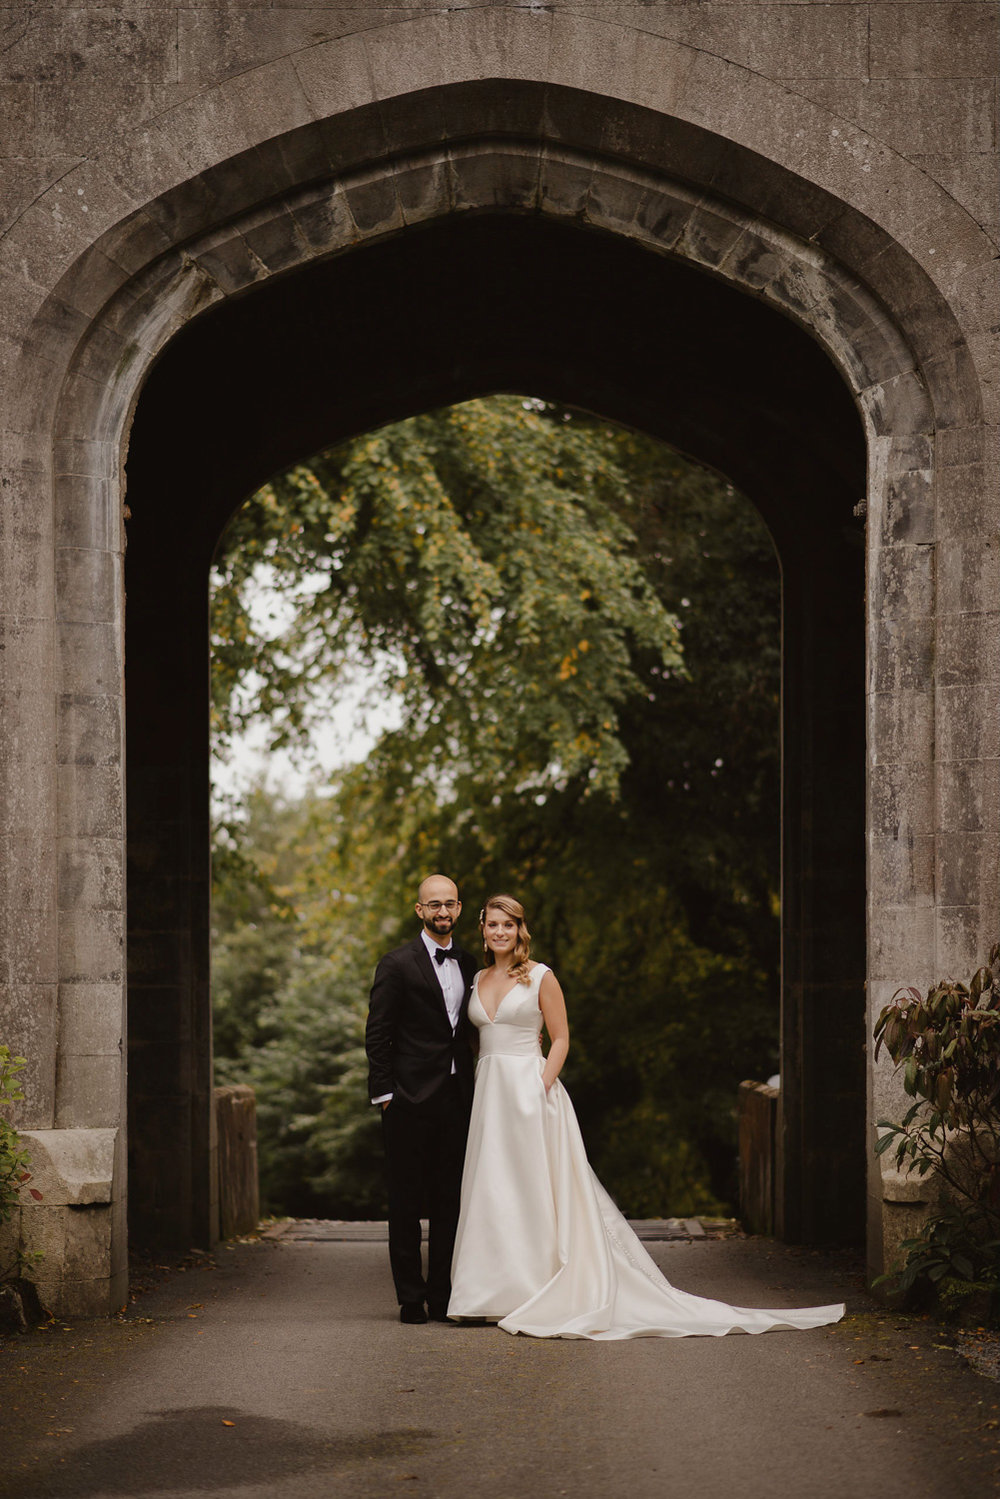 Markree castle wedding photographs -44.jpg